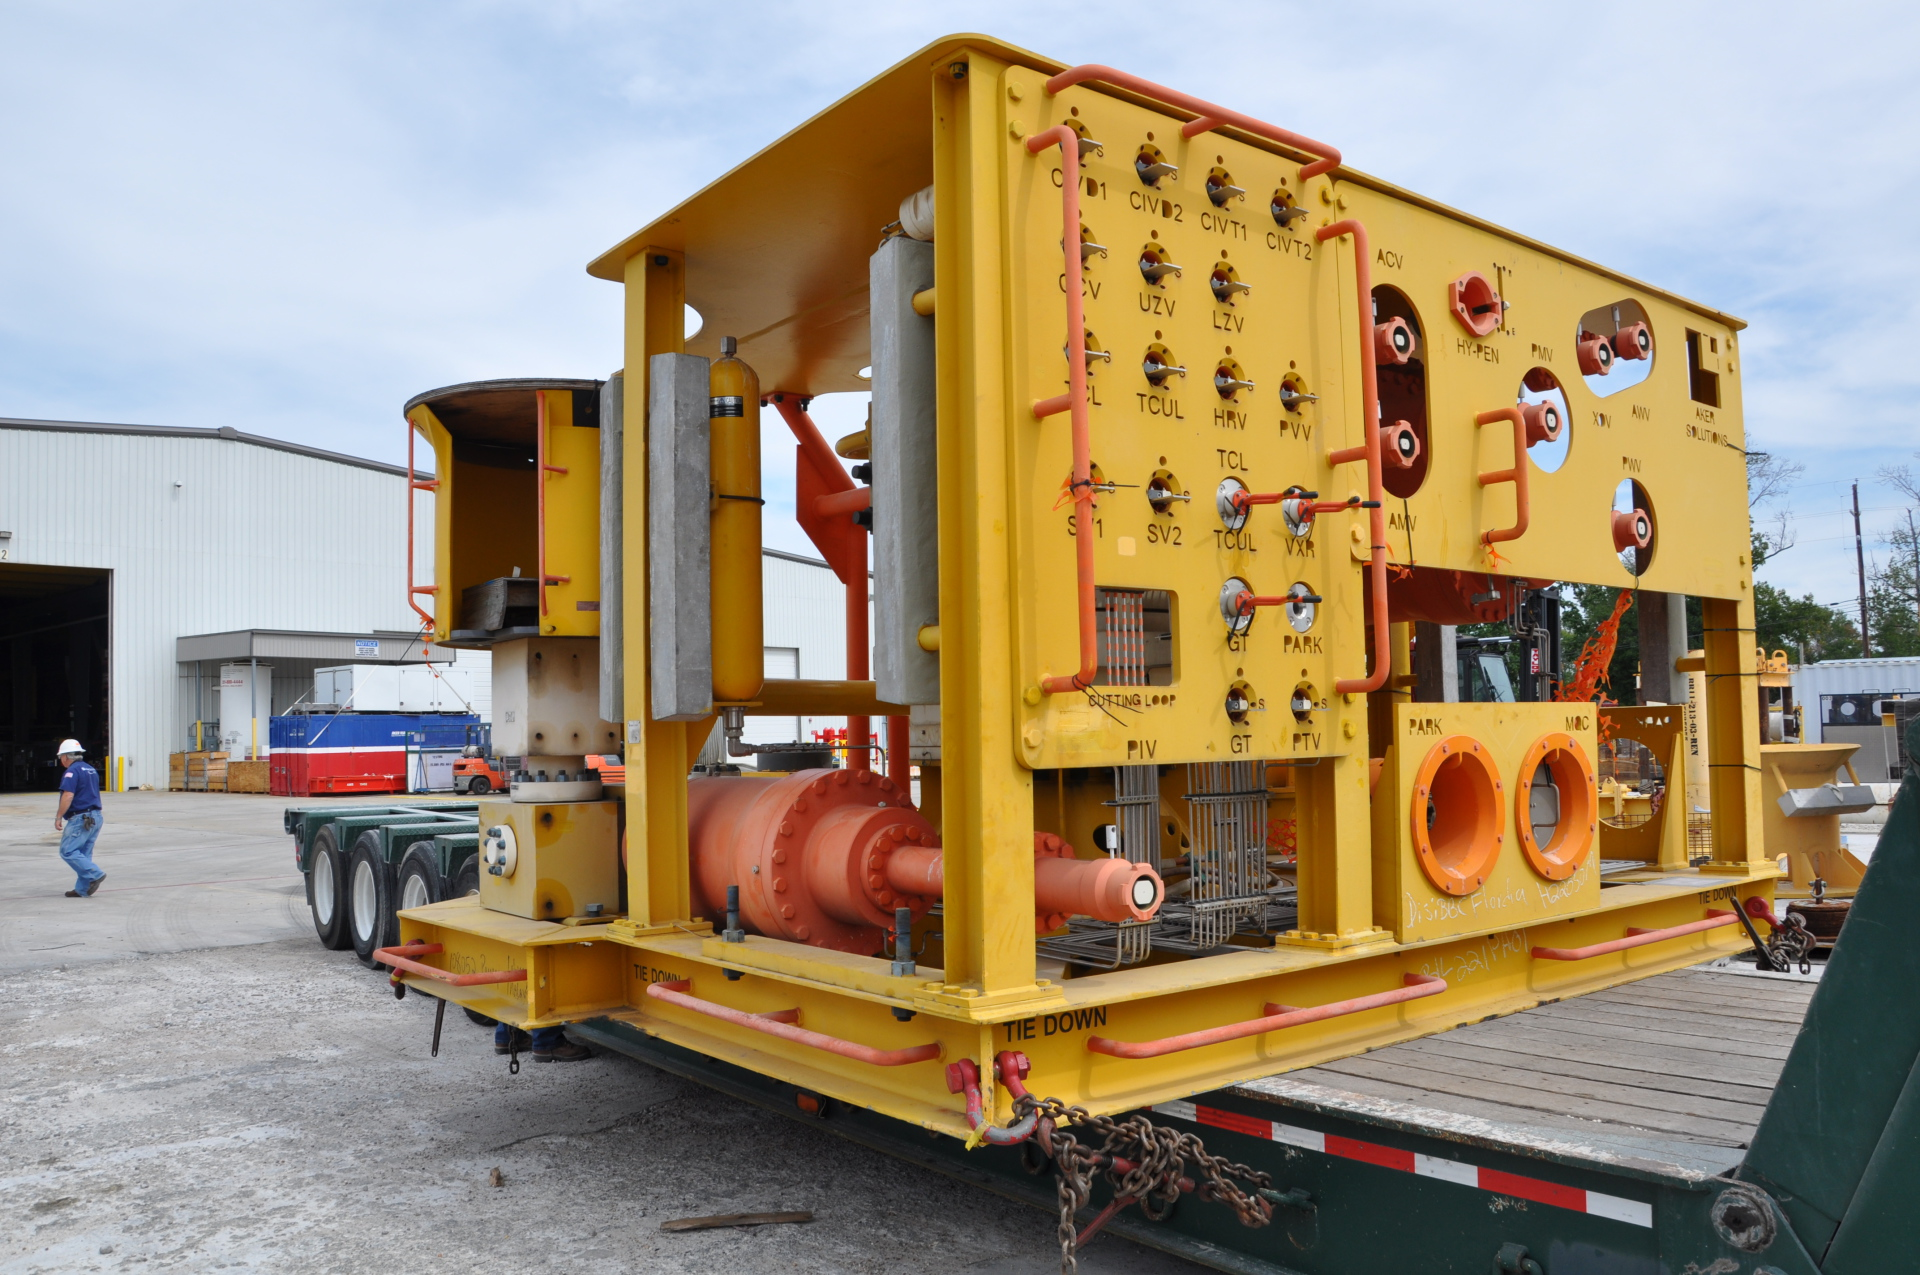 Subsea, XMT, Wellhead, Inspection, Refurbishment, Spool, PMV, PWV, XOV, Production, Connector, Load, out, trucking, shipping, choke